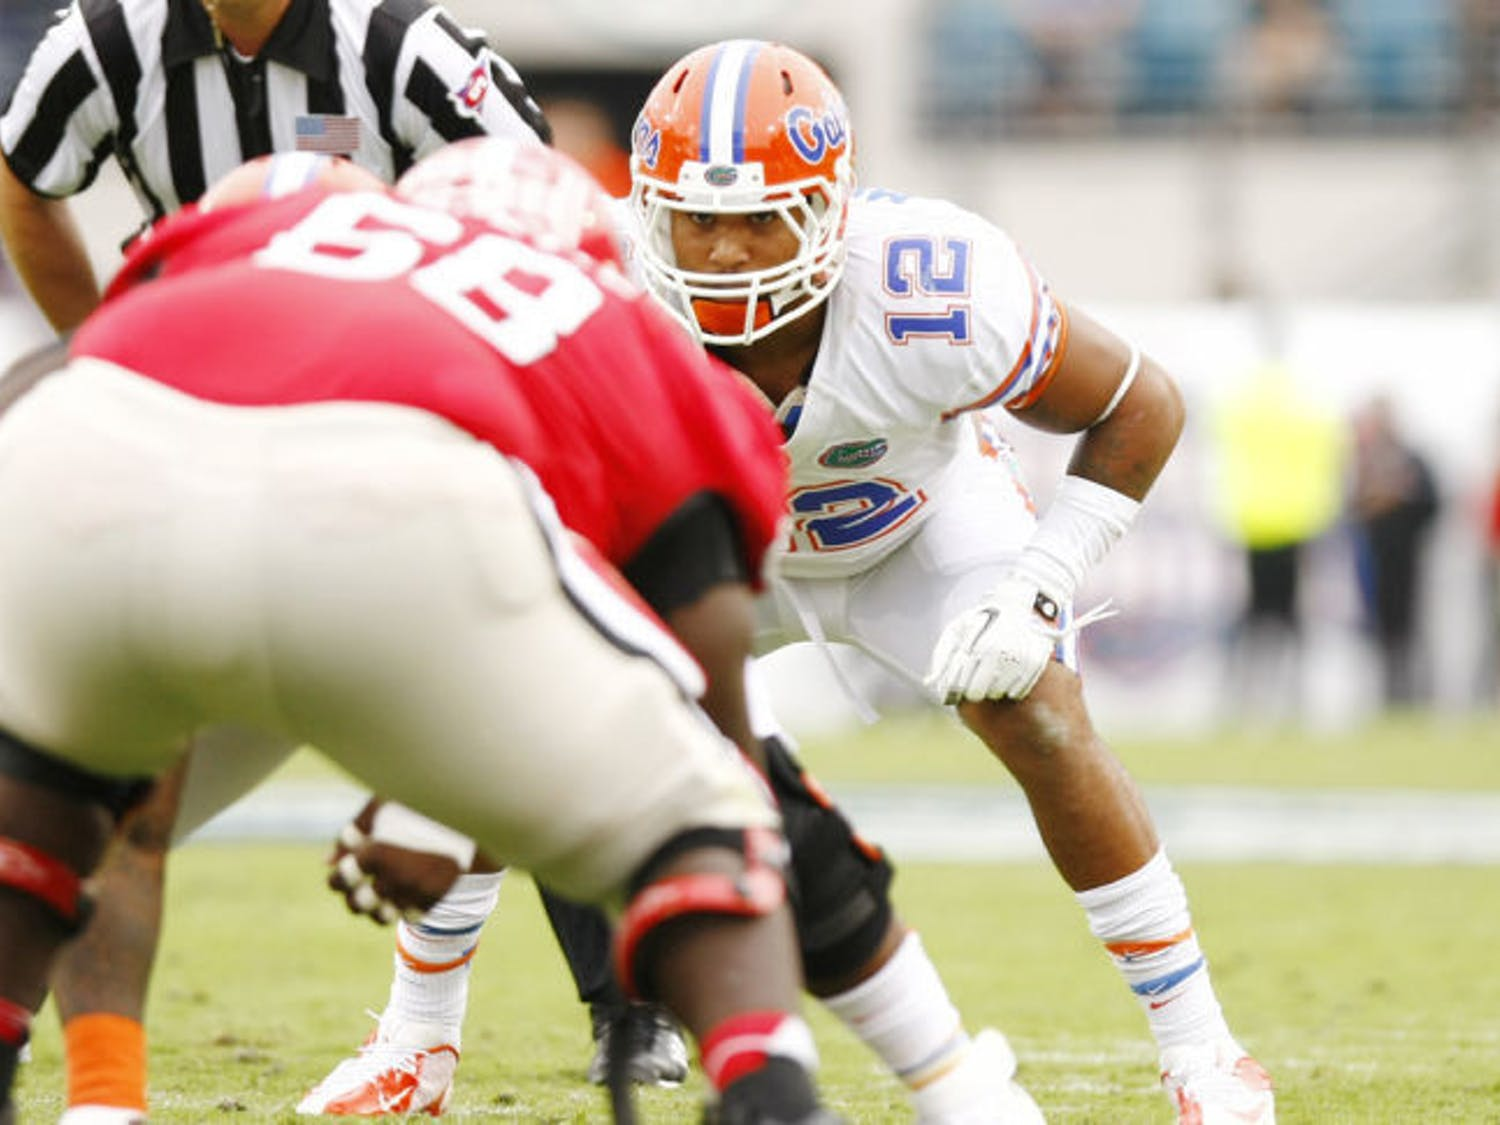 Linebacker Antonio Morrison (12) squats at the line of scrimmage during Florida's 17-9 loss to Georgia on Oct. 27 at Everbank Field in Jacksonville.